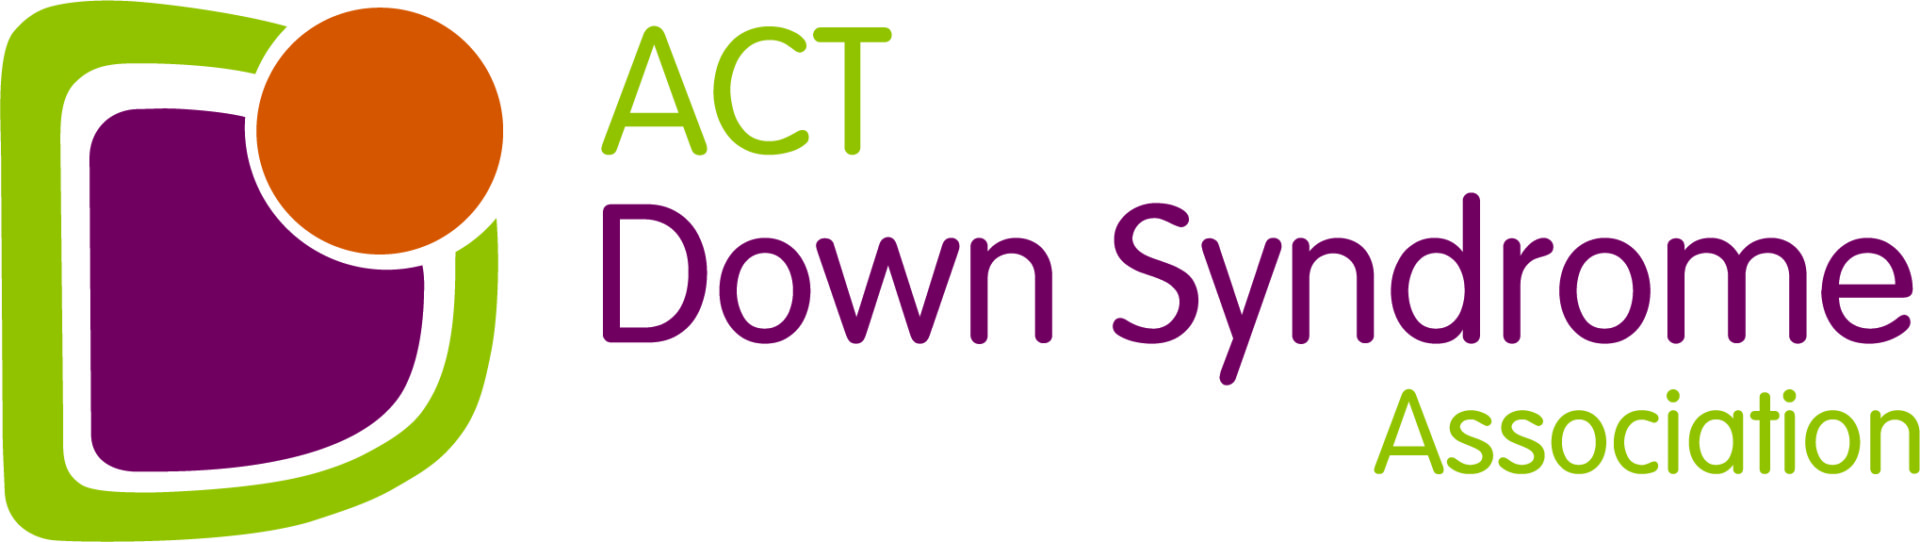 ACT Down Syndrome Association Logo